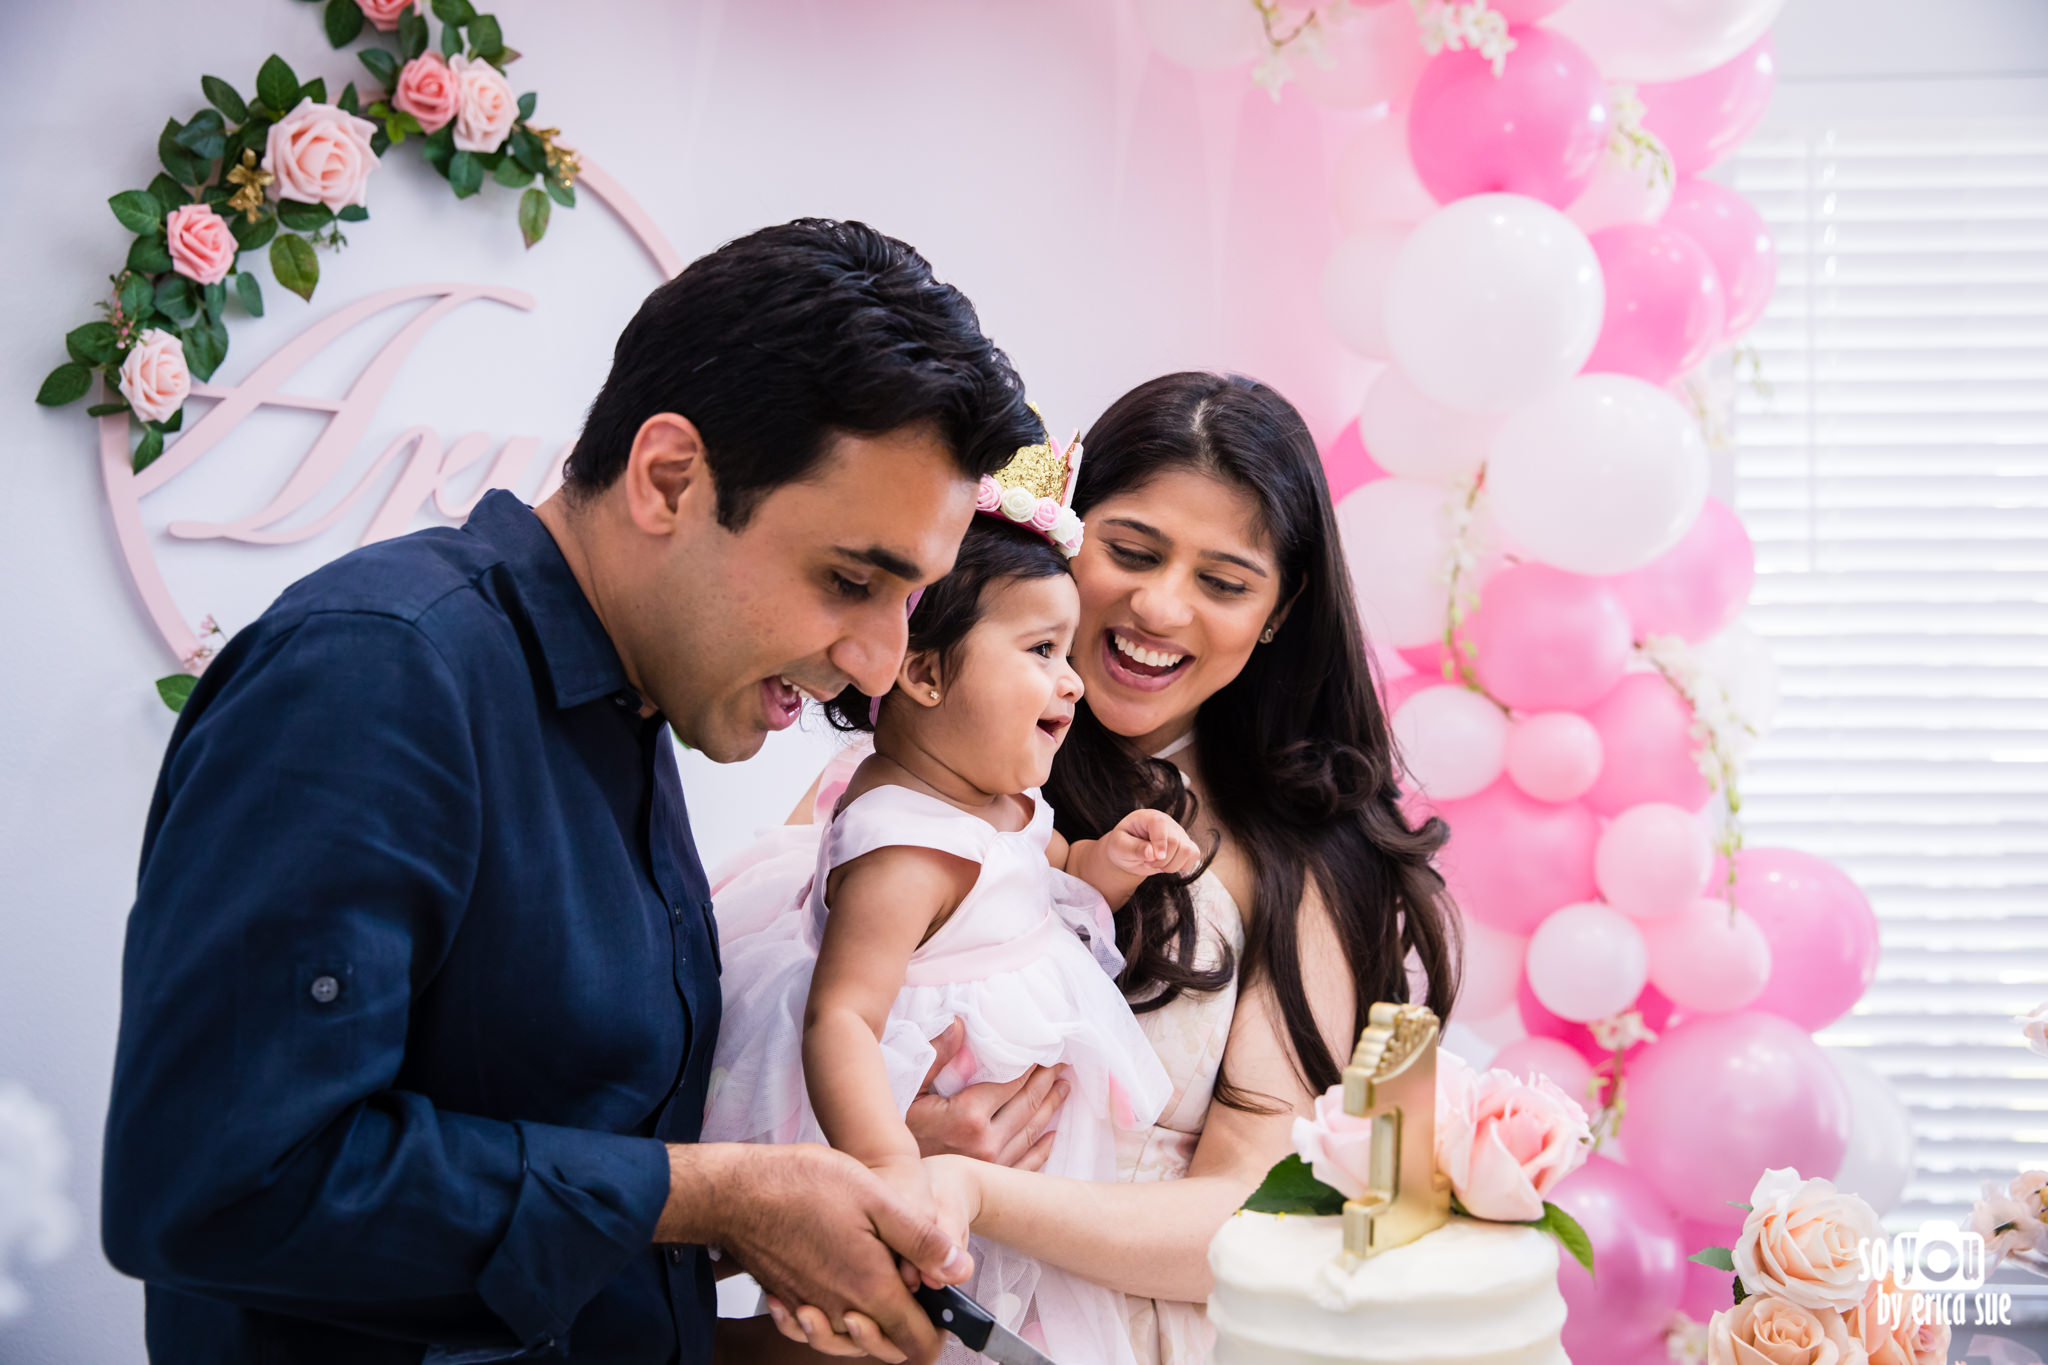 so-you-by-erica-sue-first-birthday-photographer-pembroke-pines-6143.jpg